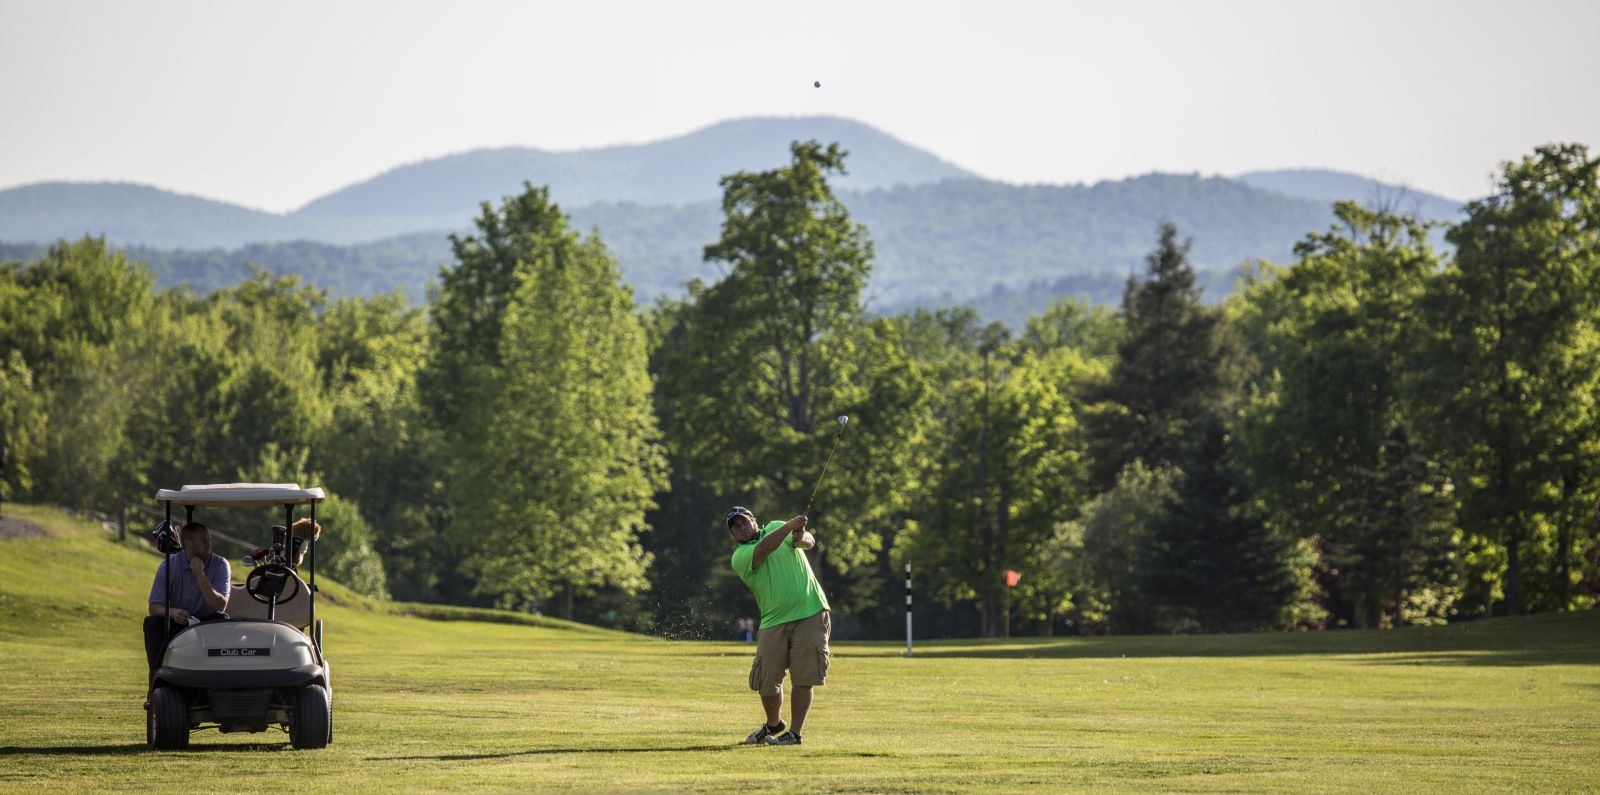 There's no shortage of beauty at the Tupper Lake Golf Course.